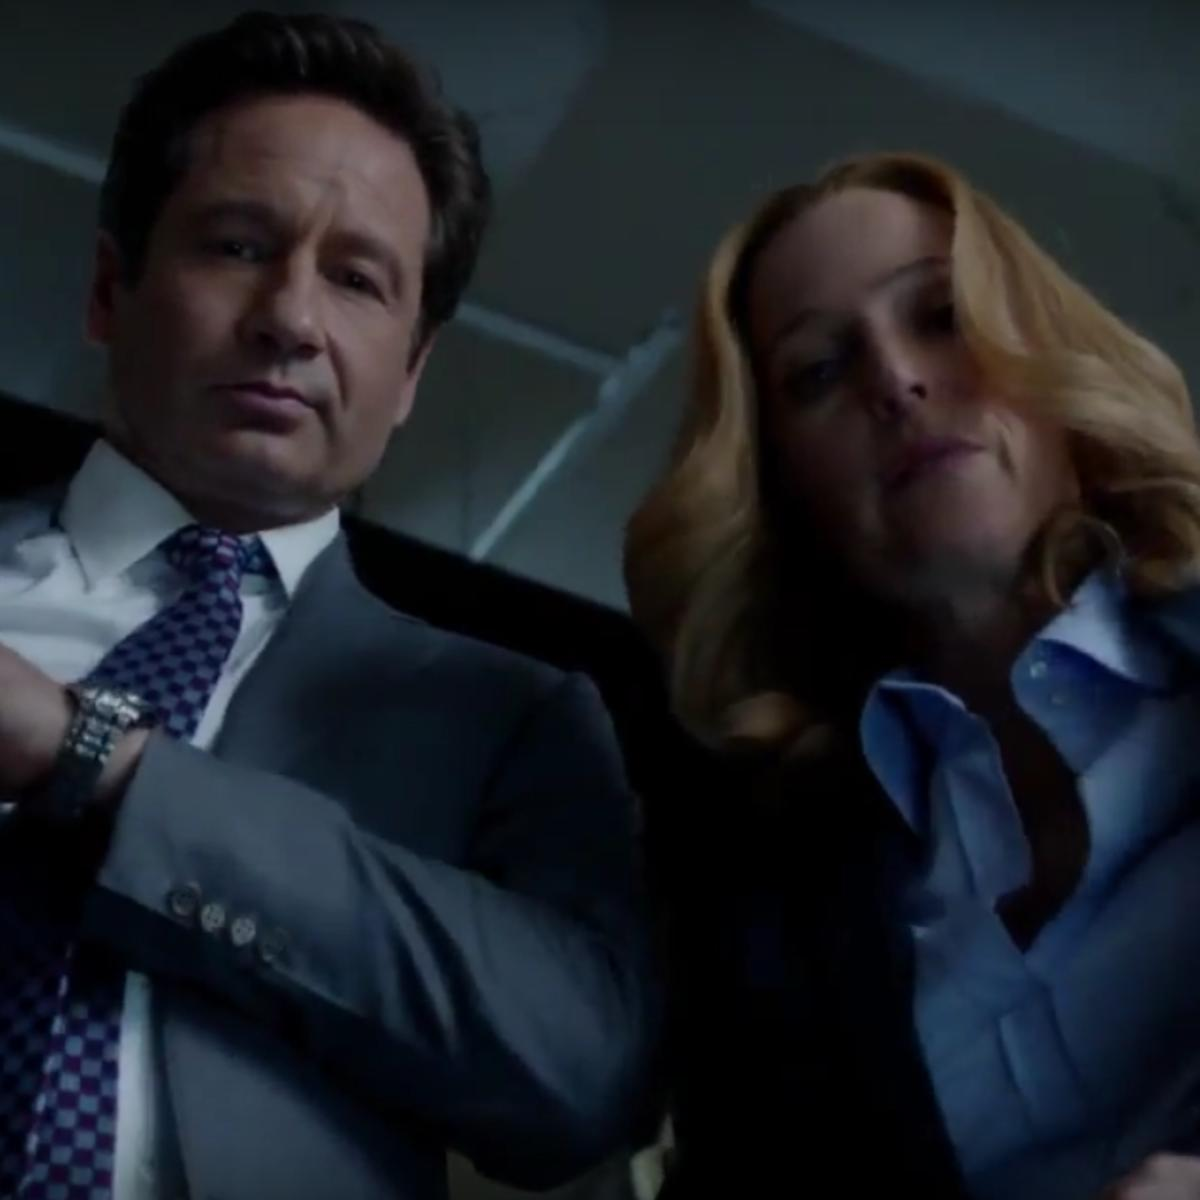 X-Files-Revival-promo-screenshot_0.png